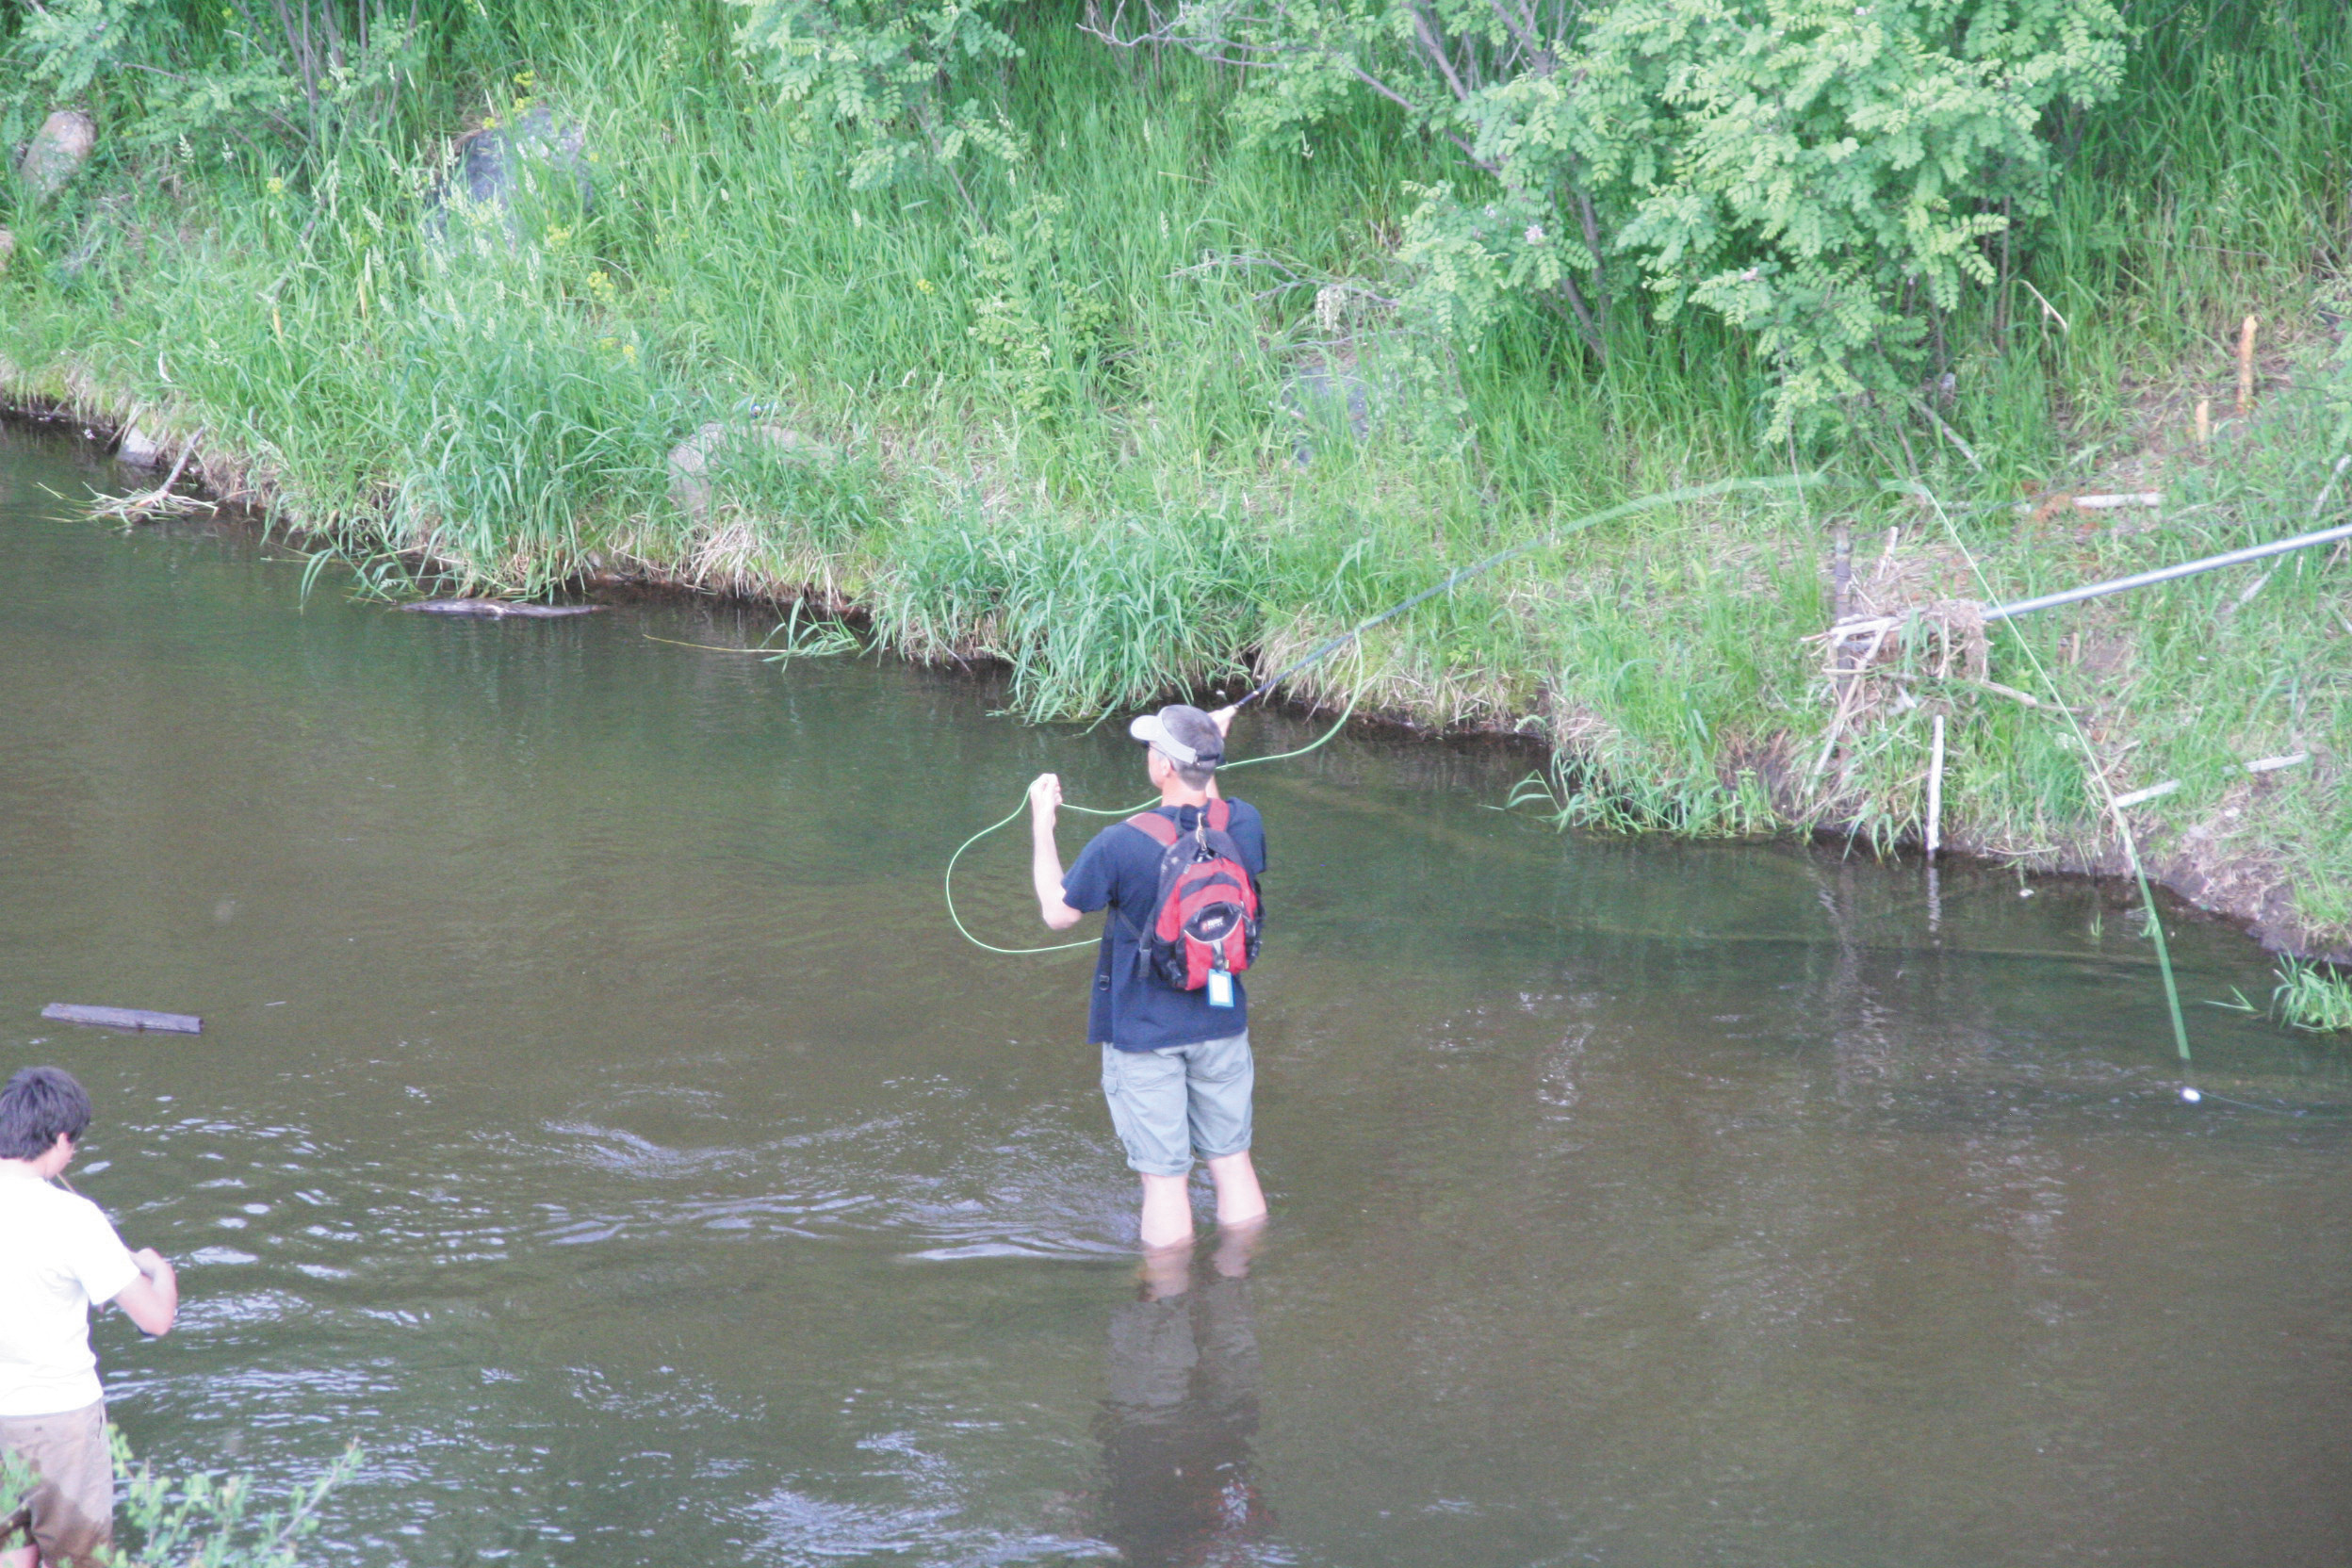 Fly fishing takes a little bit of a different skill set and it also takes different equipment but Colorado has plenty of rivers that are perfect for fly fishing.